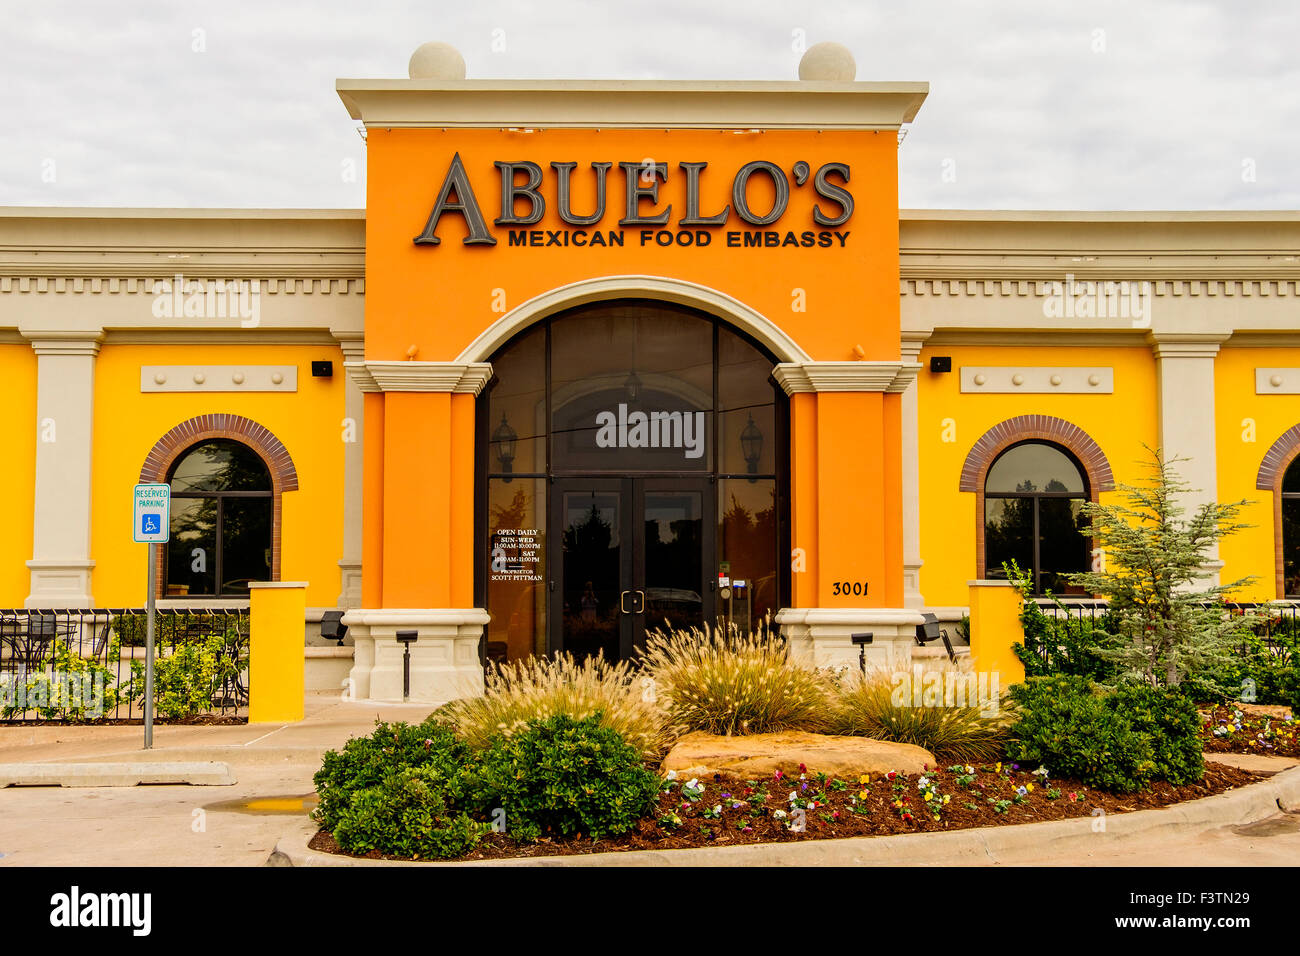 Abuelo S Mexican Food Embassy A Restuarant Serving Mexican Cuisine